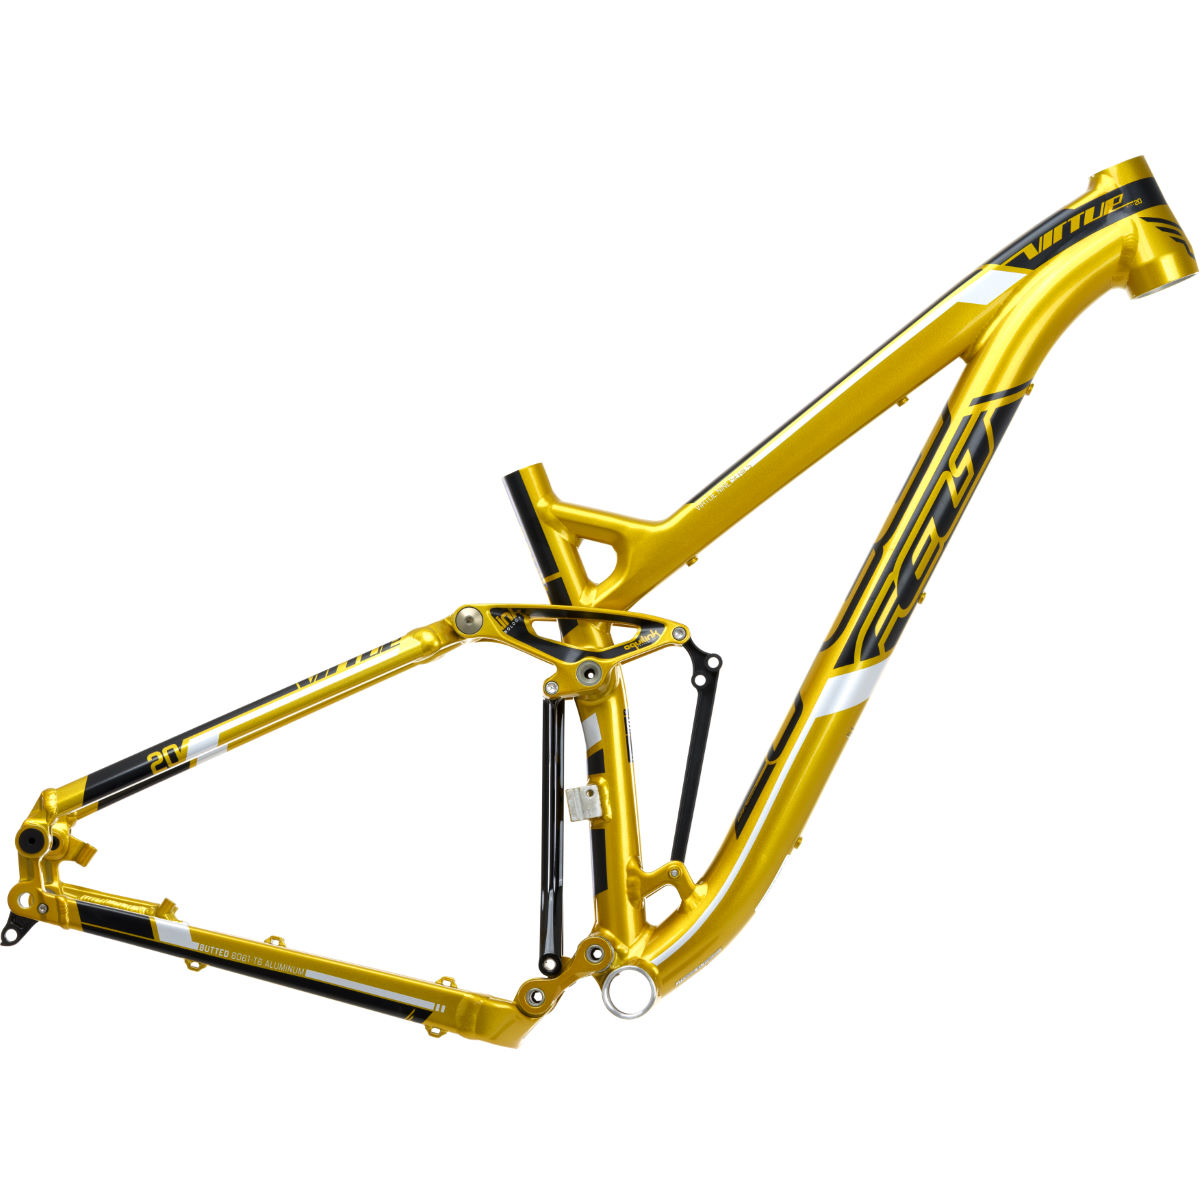 Felt Virtue Nine Frame 2014 Full Sus Frames